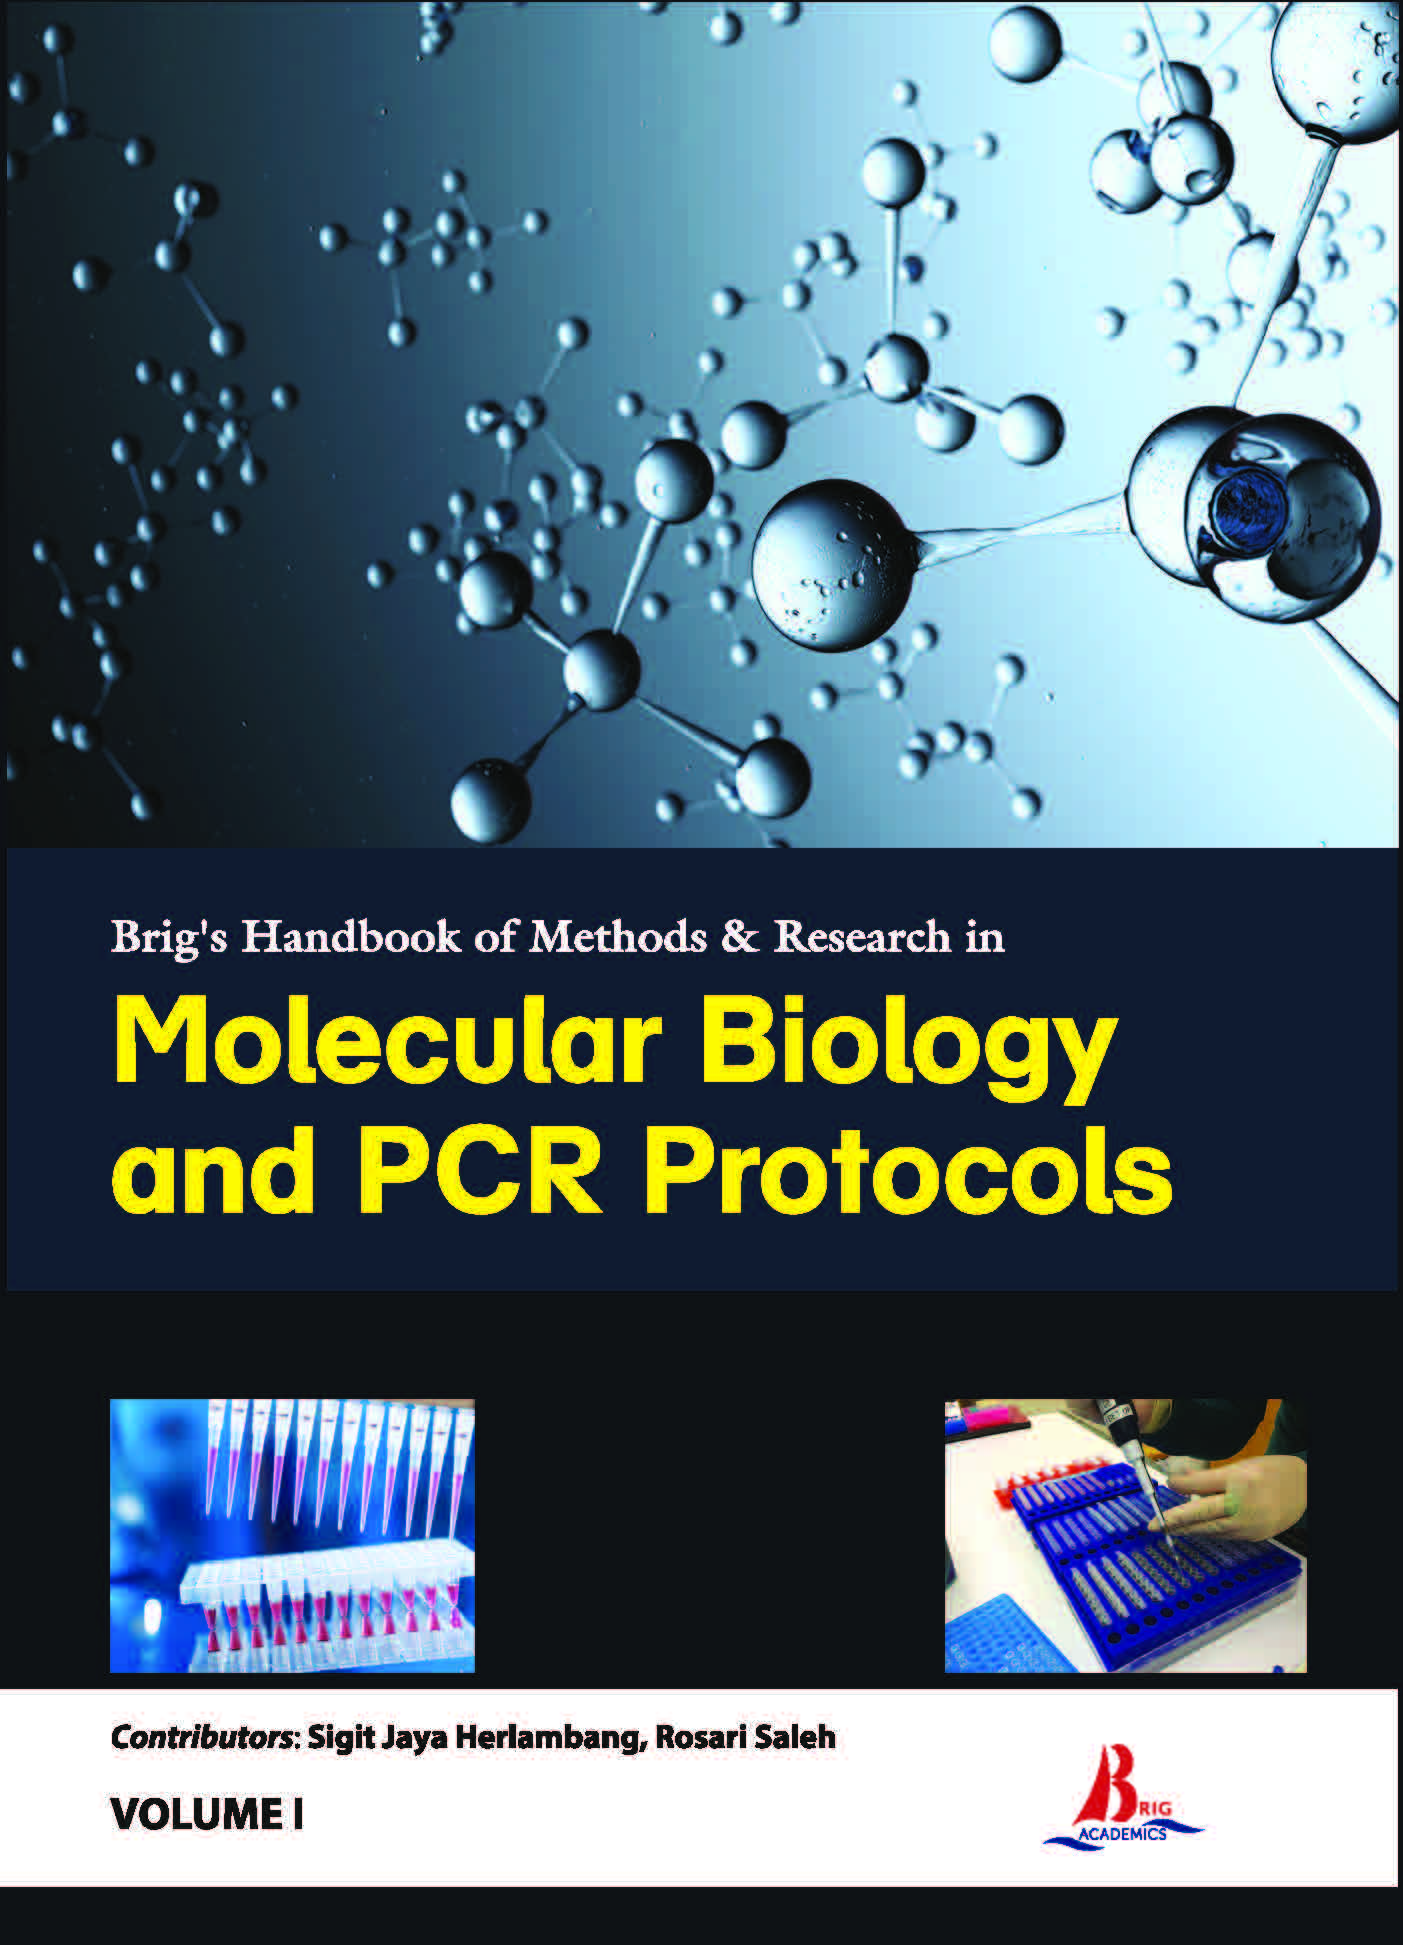 Brig's Handbook of Methods & Research in Molecular Biology and PCR Protocols